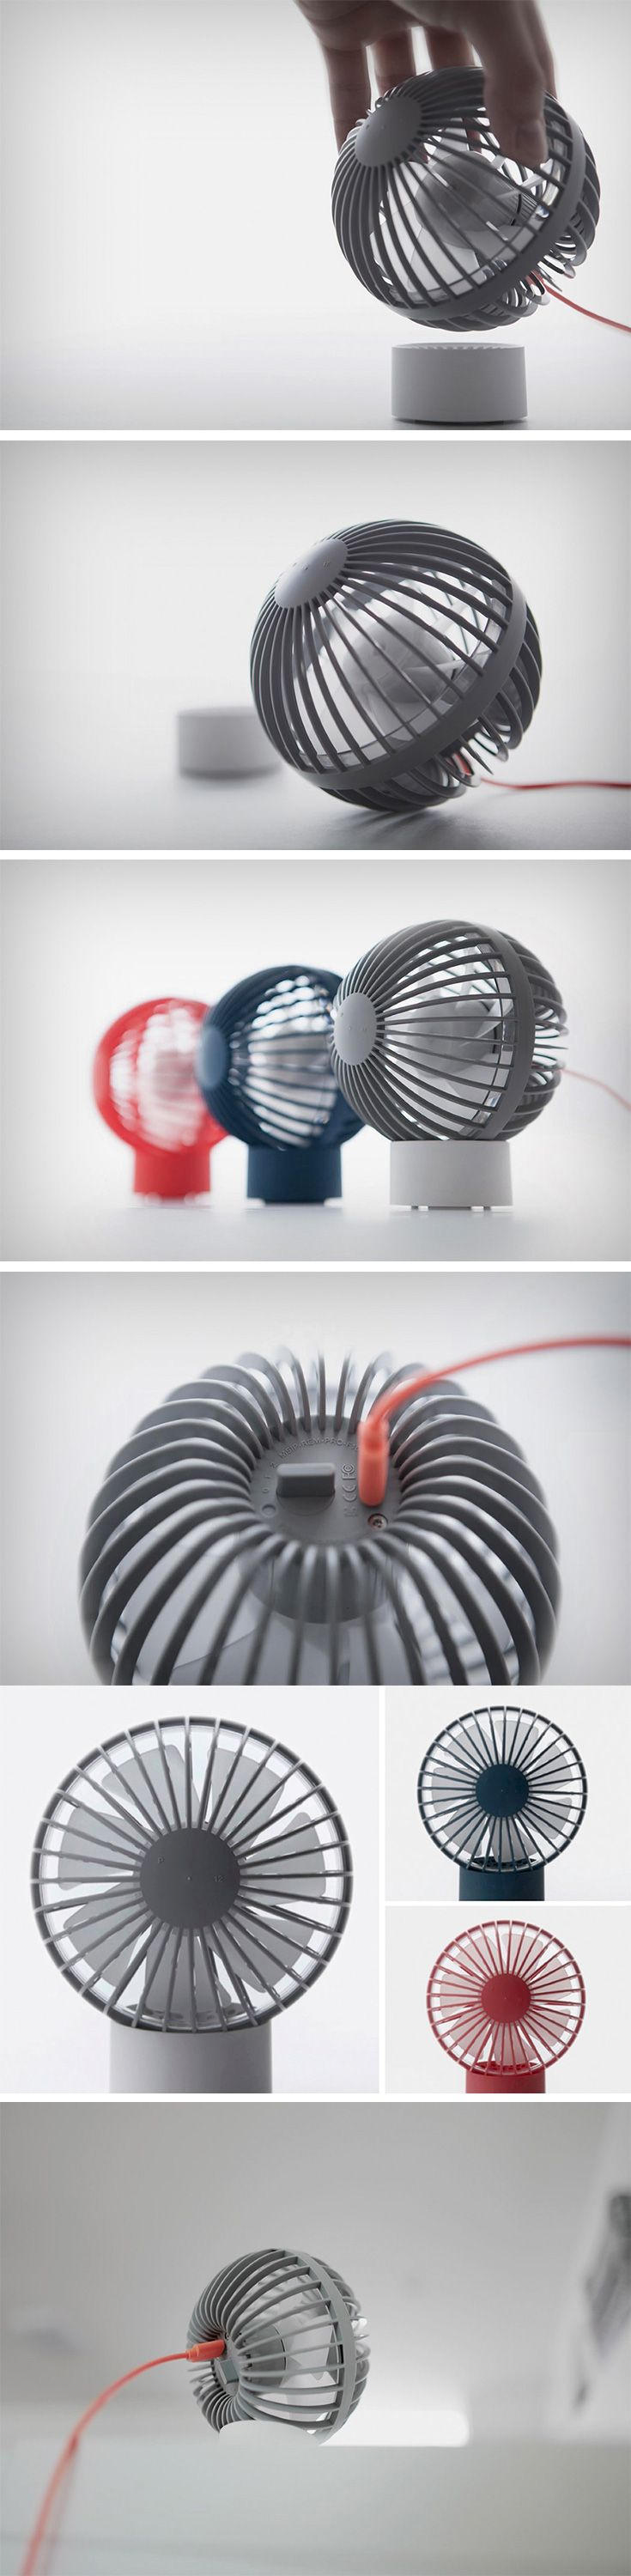 The O-Fan (named aptly) powers itself via MicroUSB and instead of looking like a fan on the end of a USB stick, looks more traditional, with a dash of fresh  and quirky. The entire fan fits right into a spherical housing that sits independently, or can be placed on a cylindrical stand to give it the appearance of a  standing fan. The sphere resting in the cylinder can be rotated and faced in any which direction.